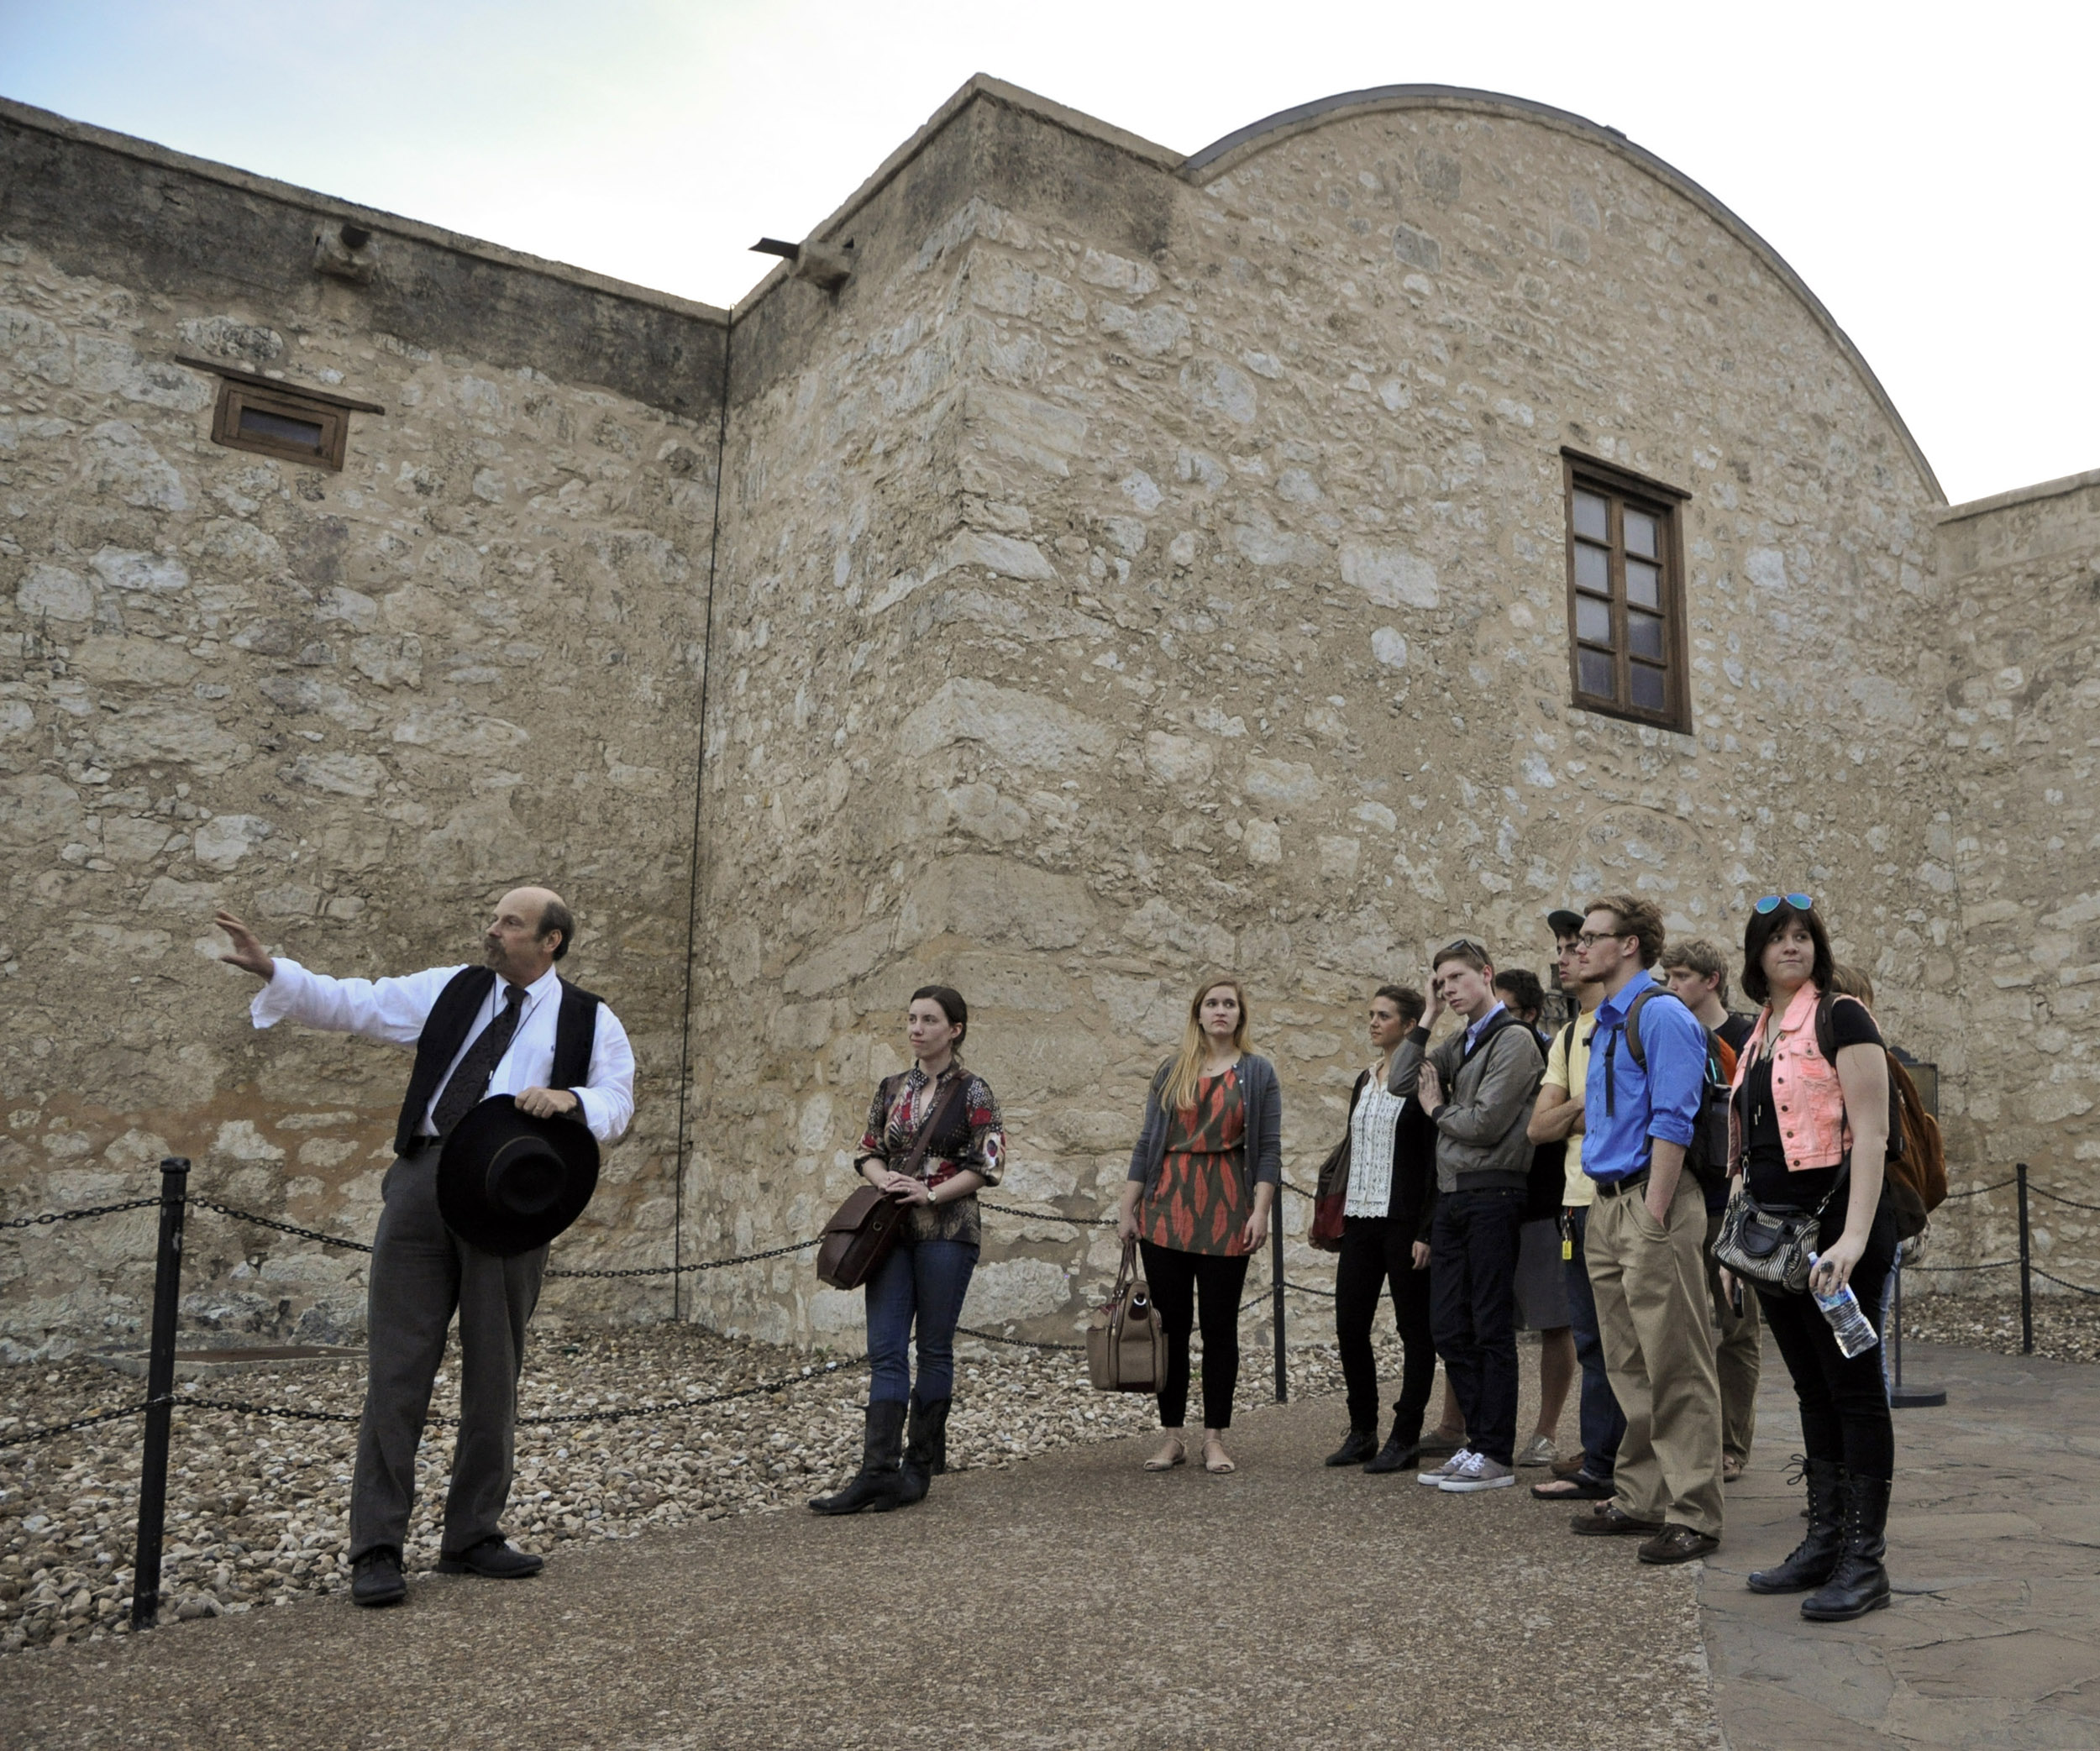 Dr. Bruce Winders gave students an after-hours tour of the historic Alamo site Image courtesy Brantley Hightower.